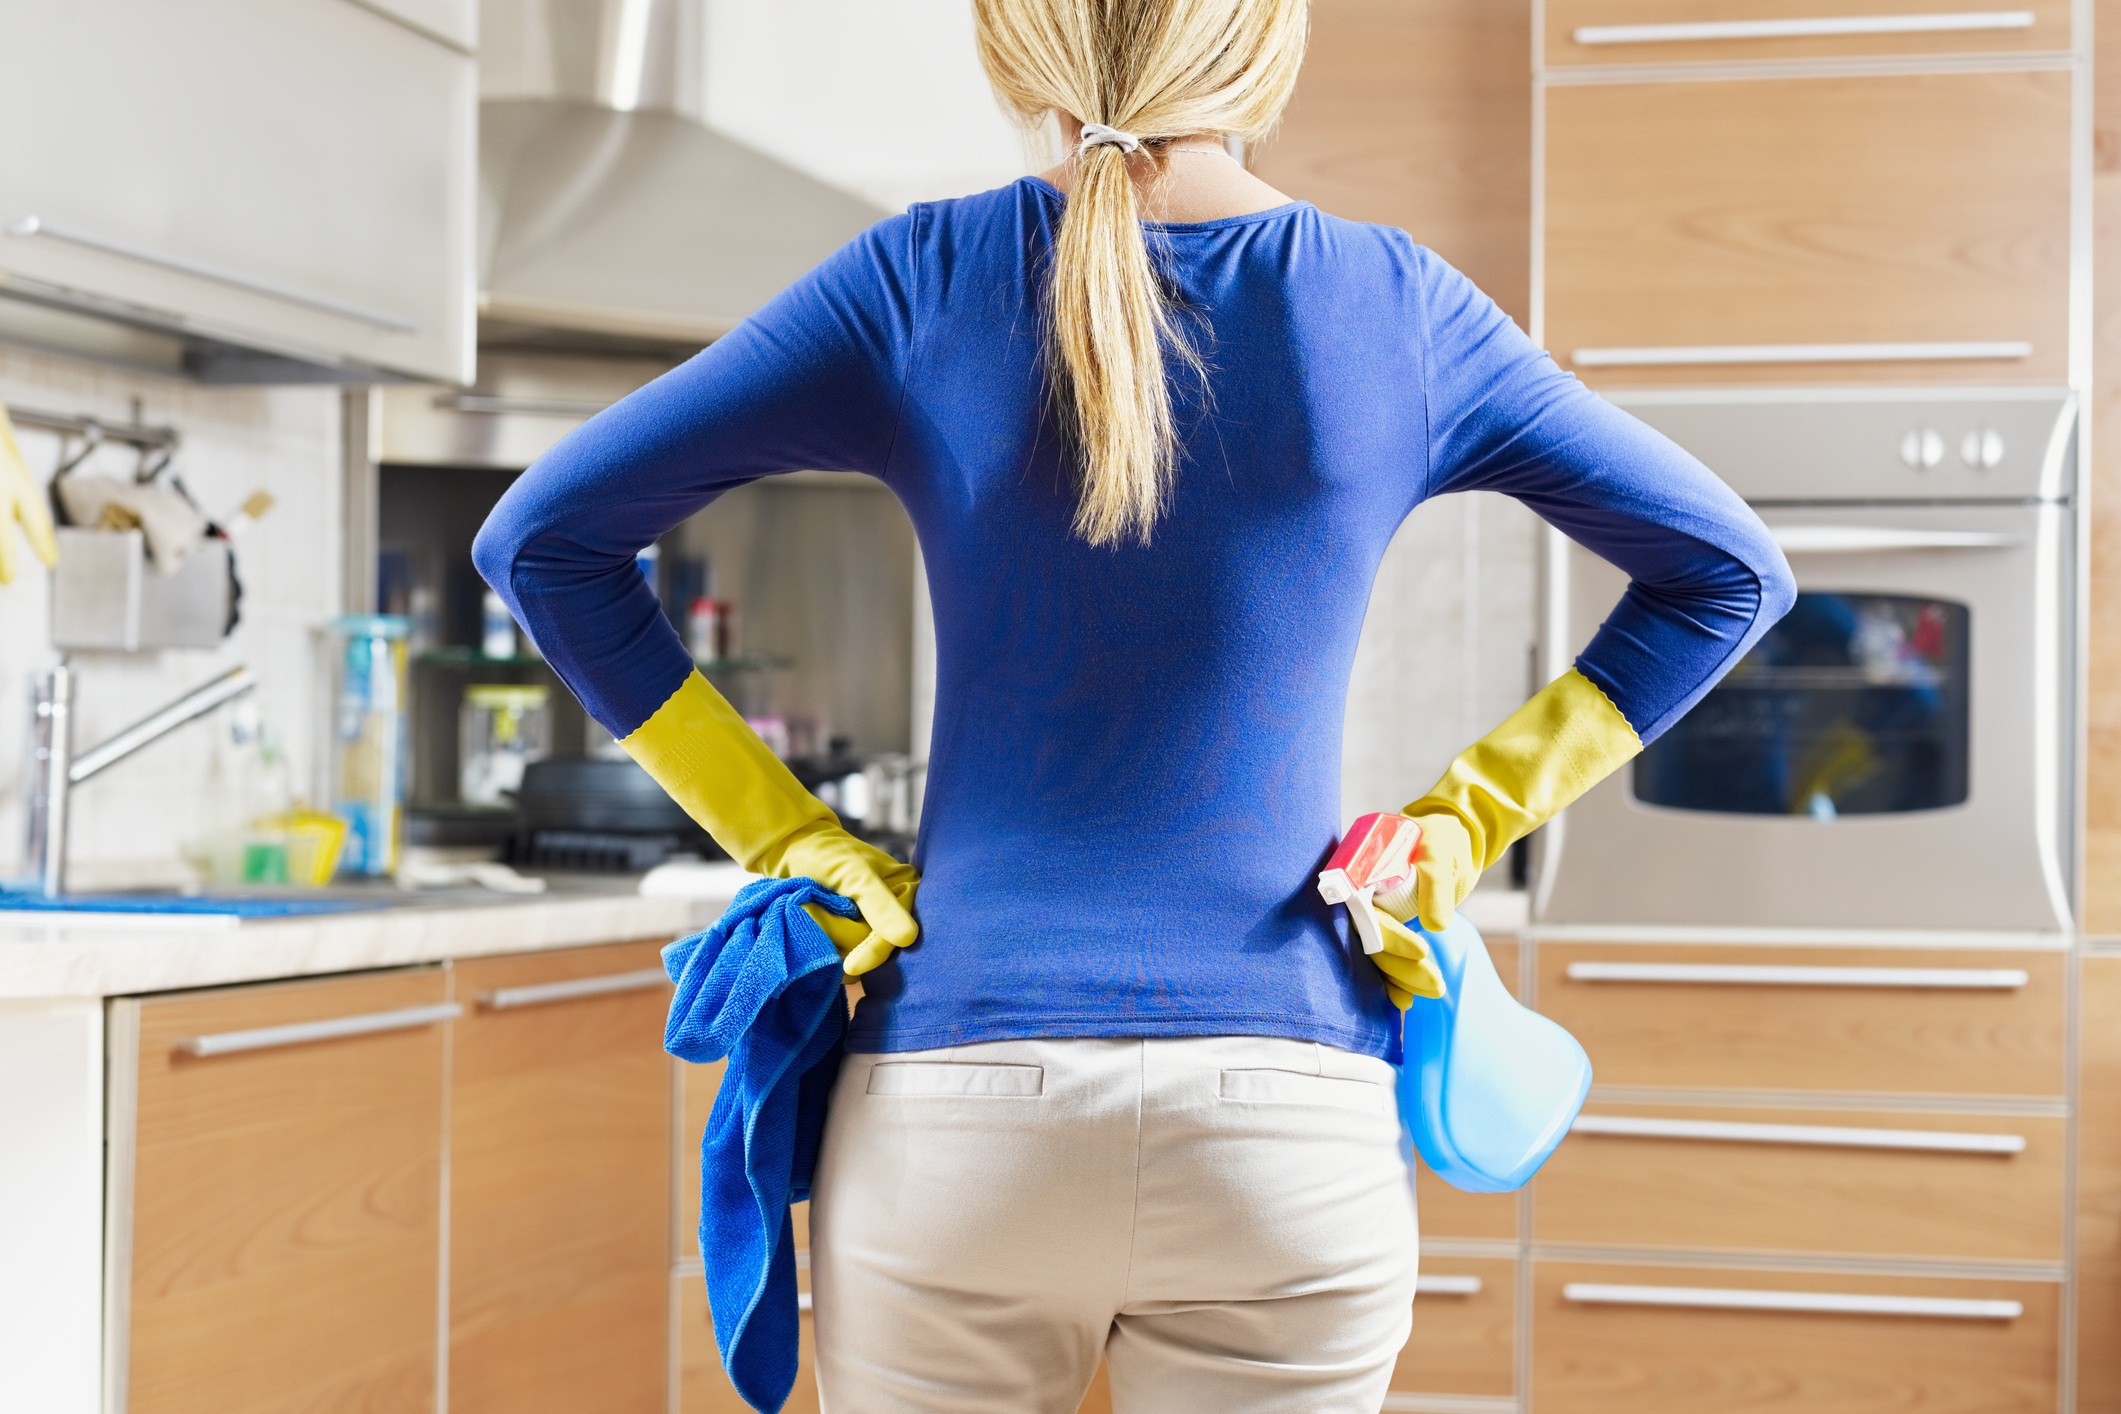 Research Reveals 1 Important Benefit for People Who Love Doing This Household Chore